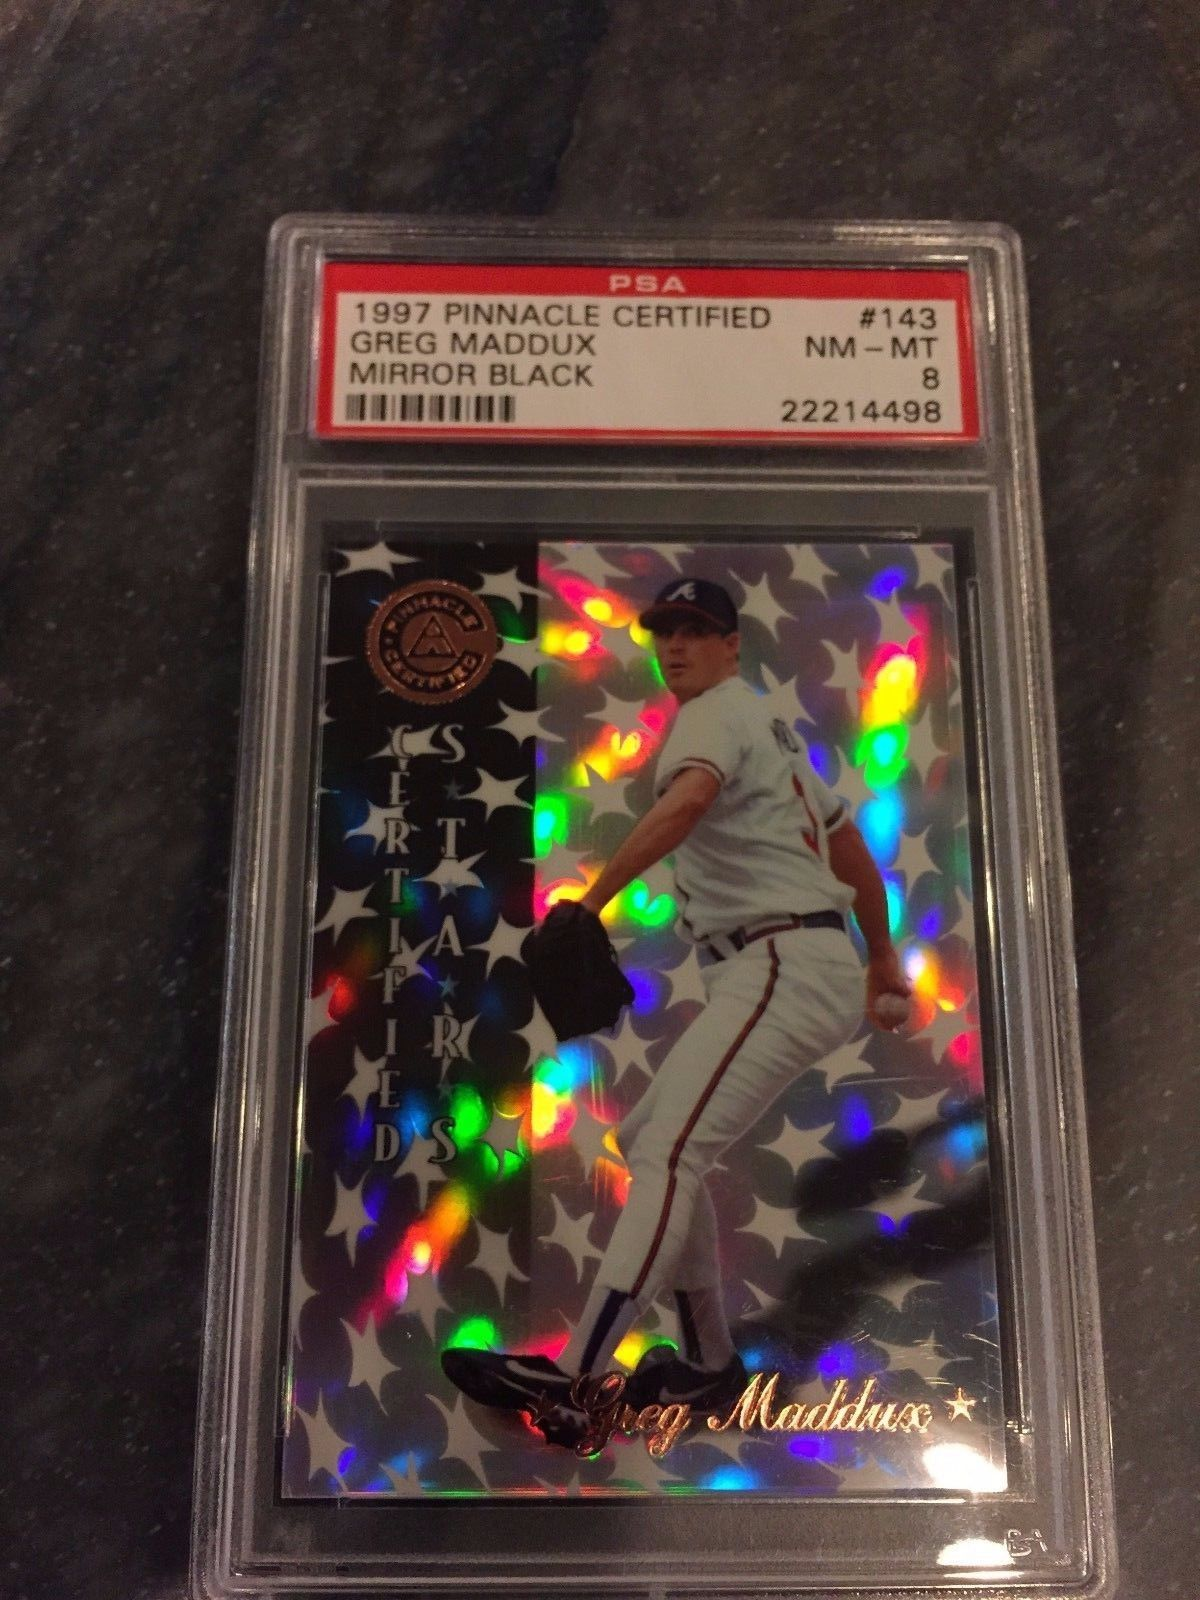 1997 Pinnacle Certified Mirror Black Greg Maddux 11